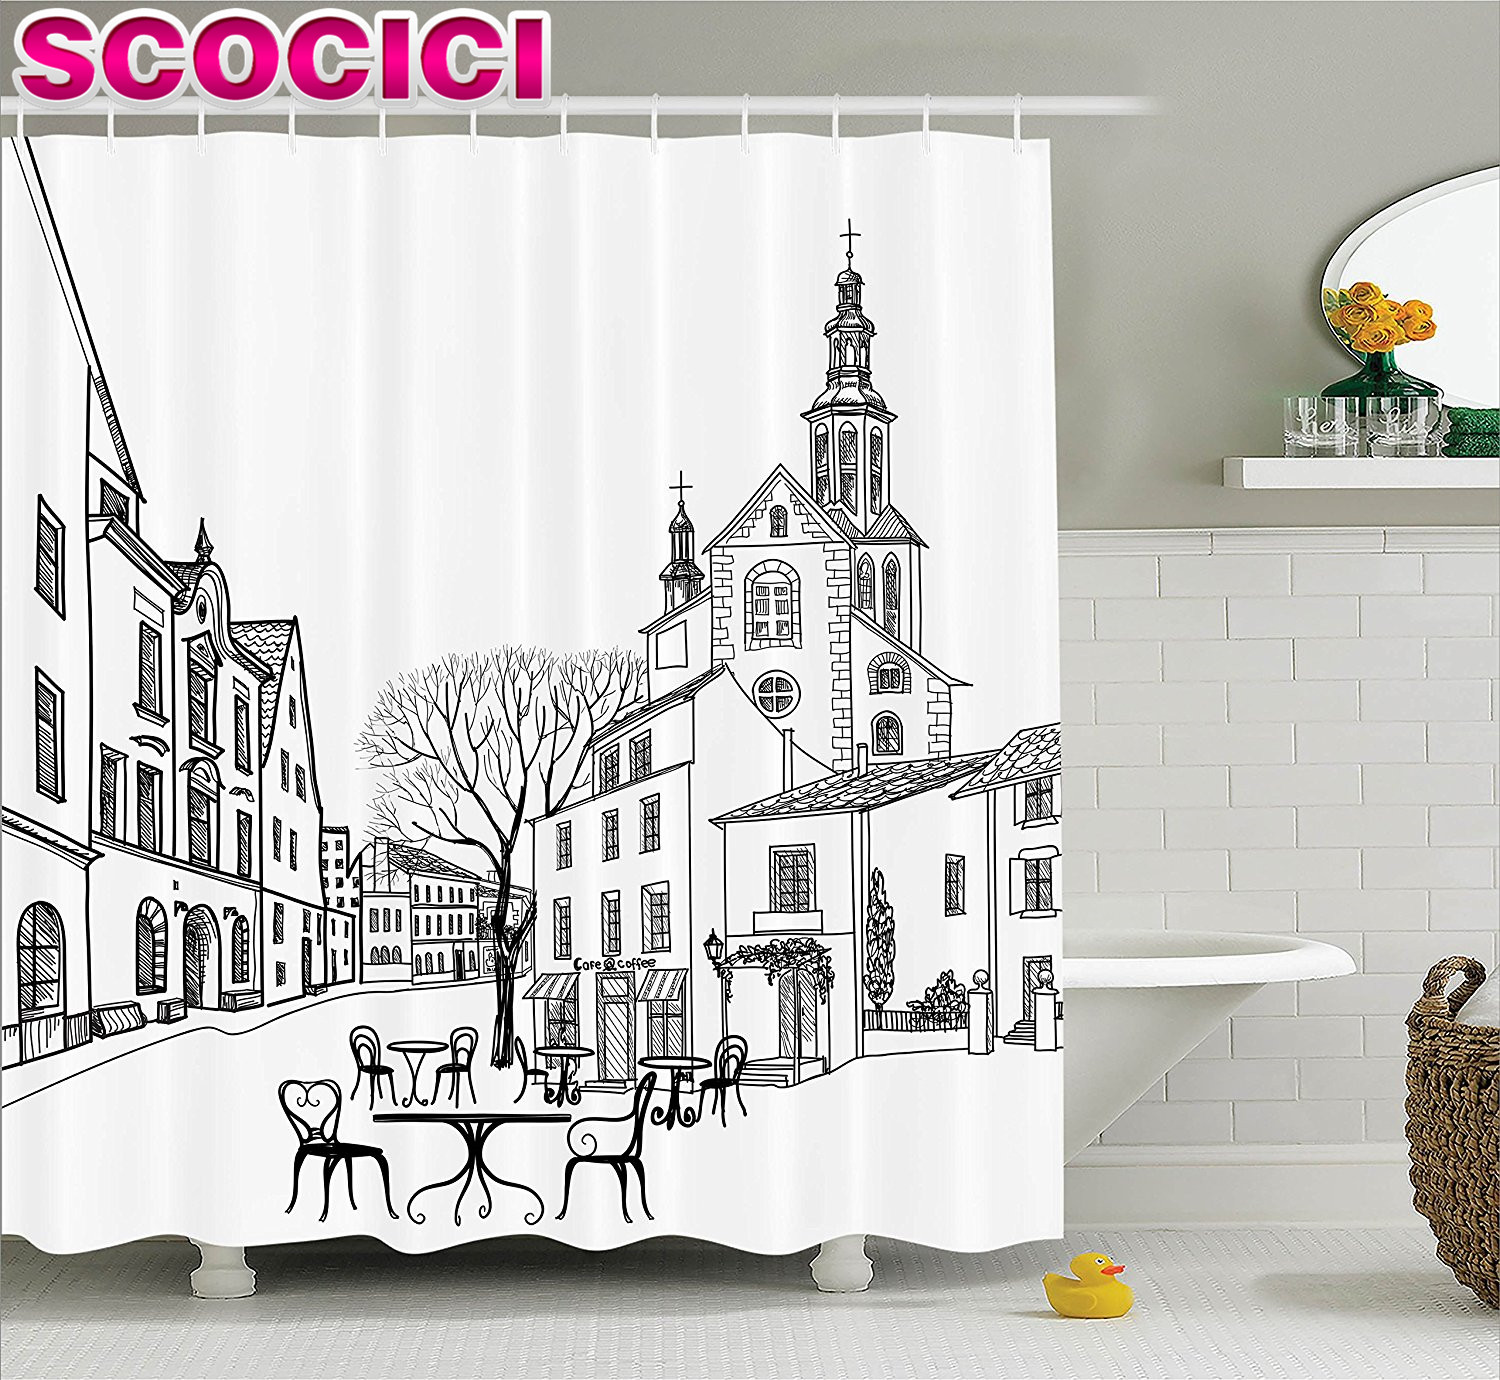 Cafe curtains for bathroom - Wanderlust Decor Shower Curtain Set Street Cafe In Old City Houses Buildings Tree On Alleyway Medieval Castle Landscape Bathroom